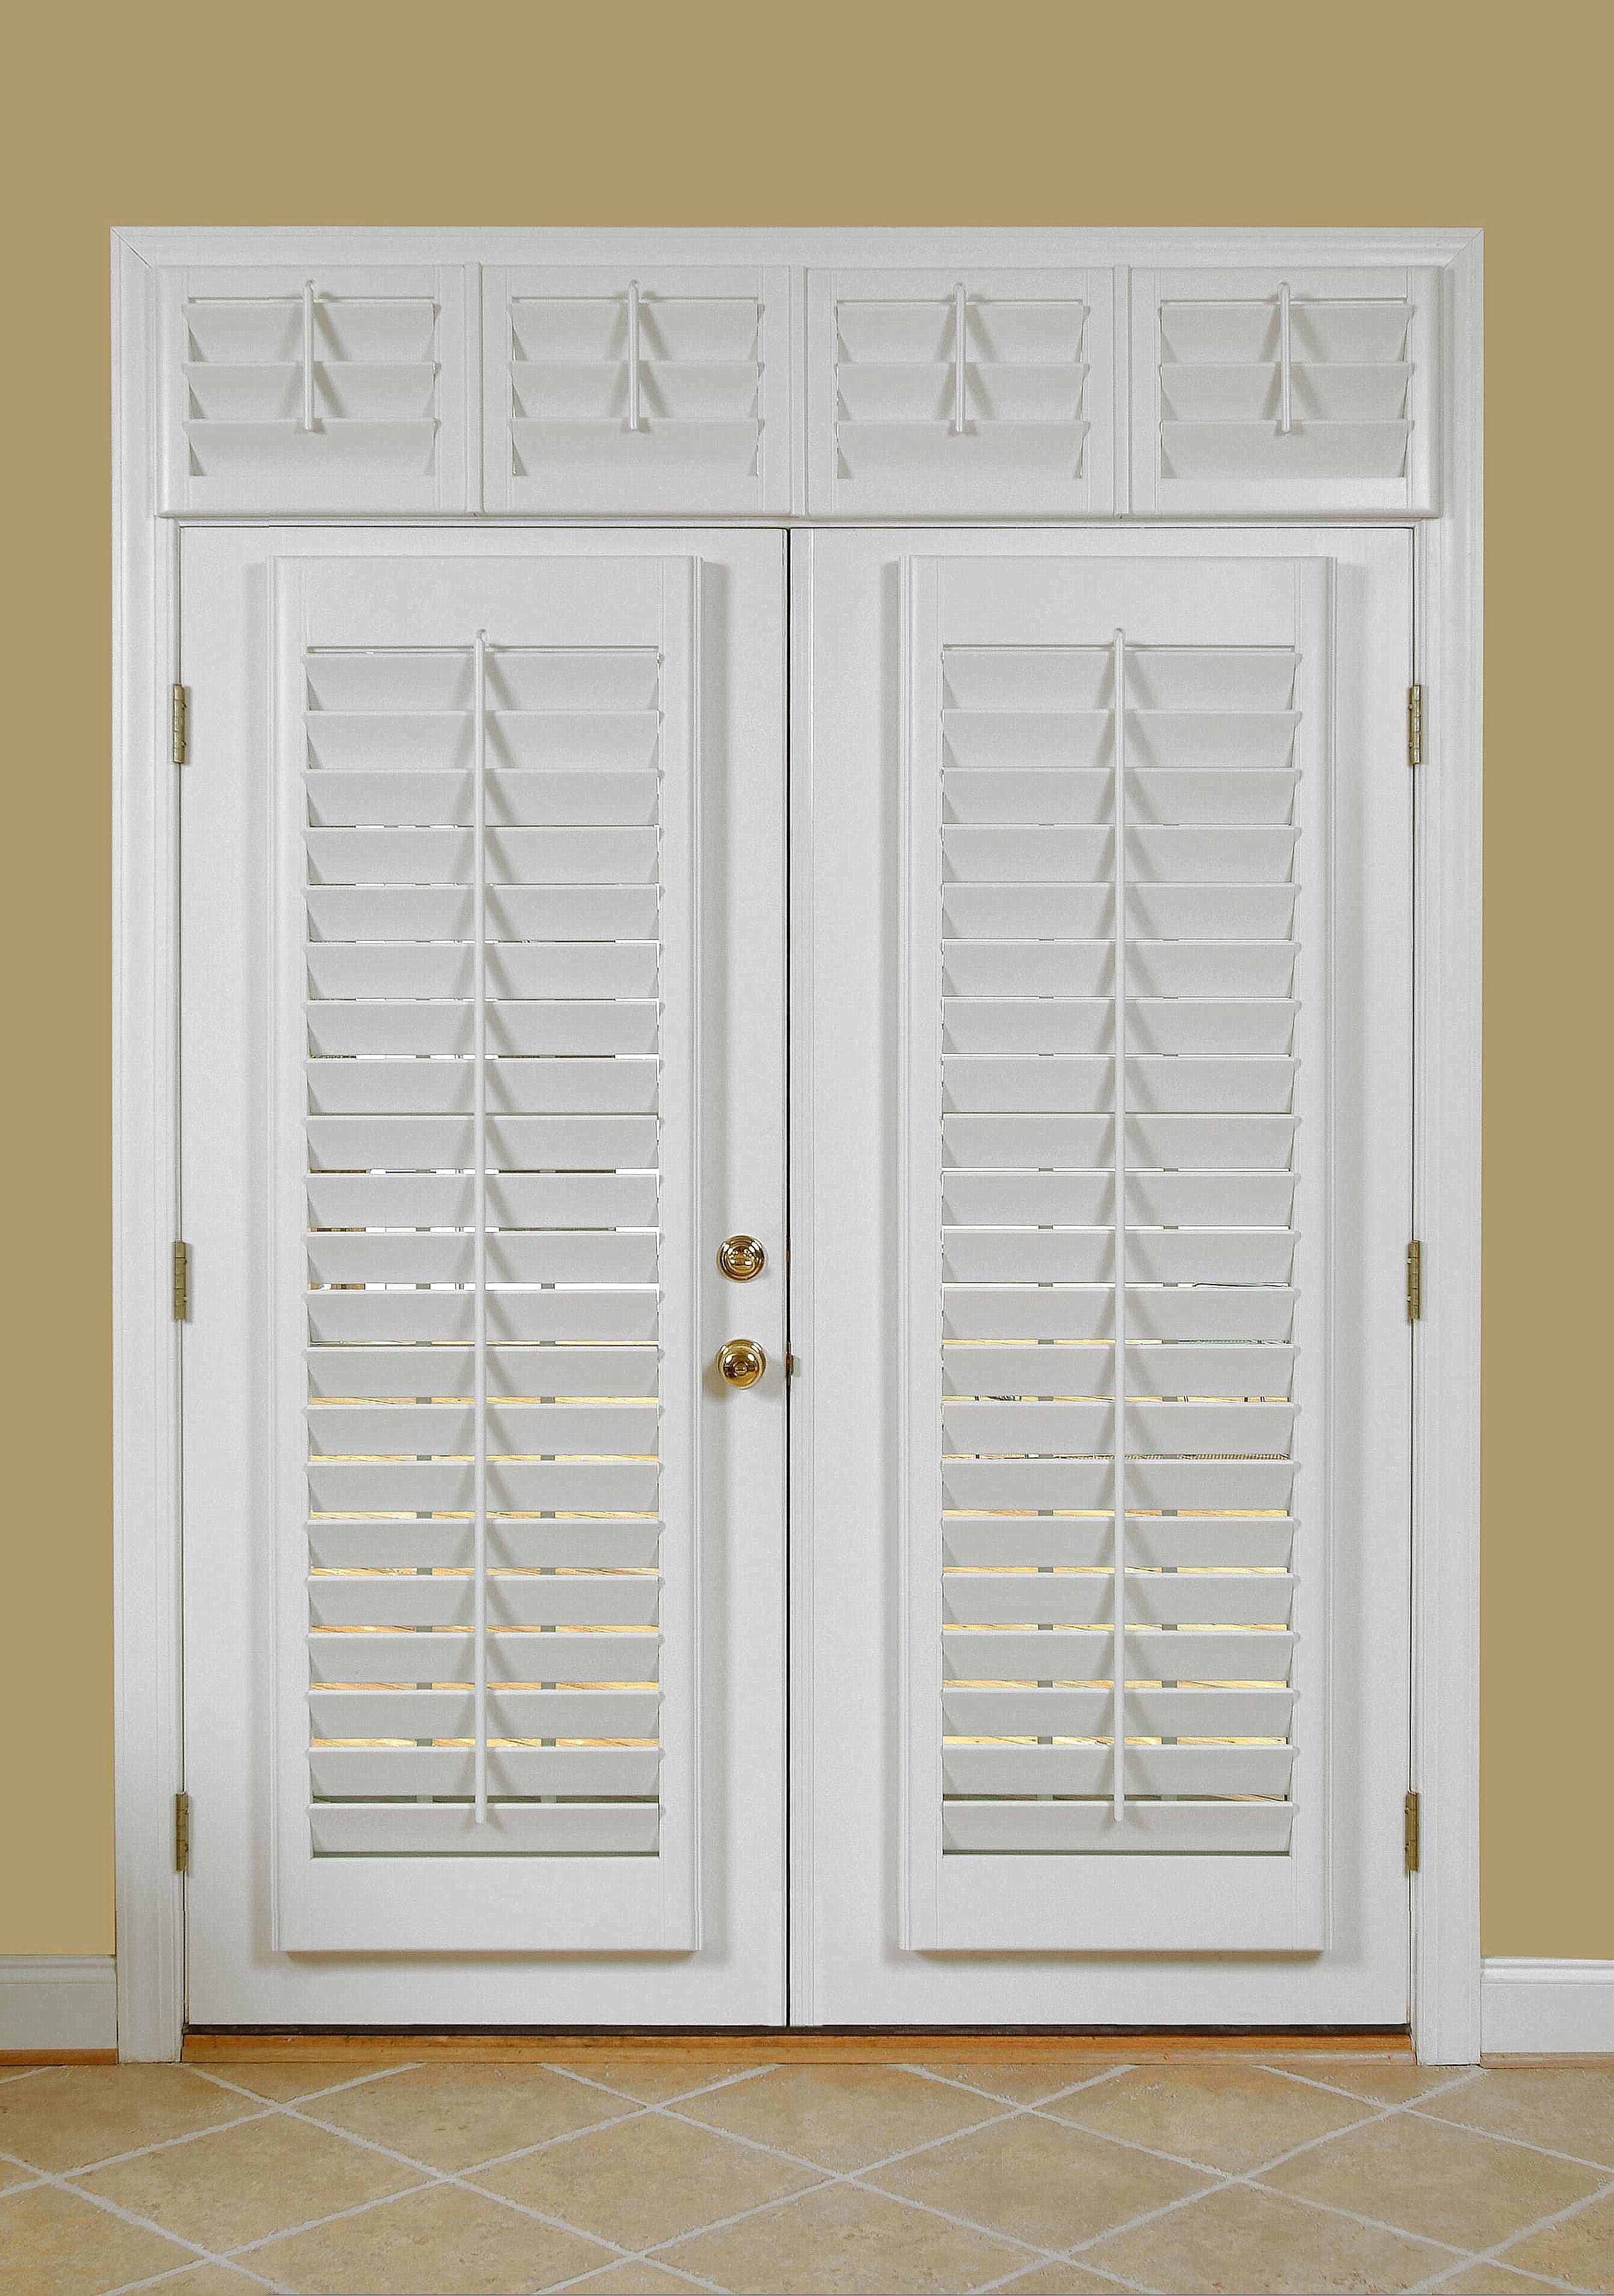 Classic, clean white shadowbox shutters on French doors ...